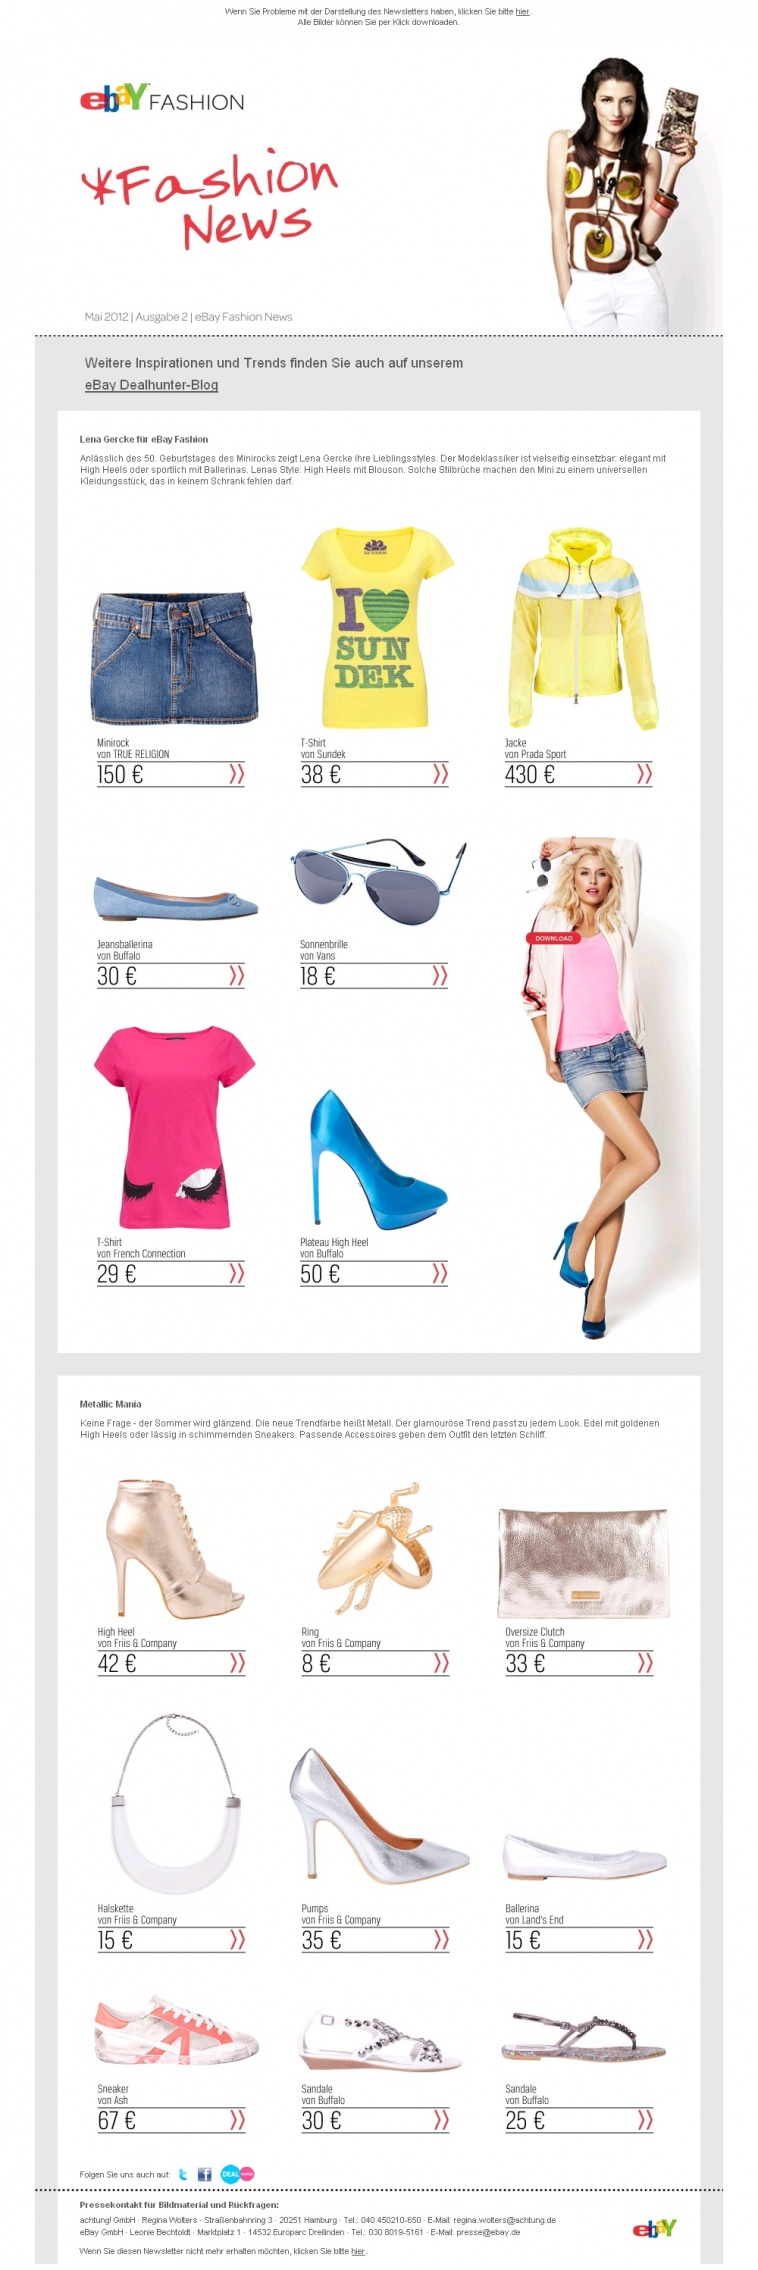 fashion_newsletter_2_0_0